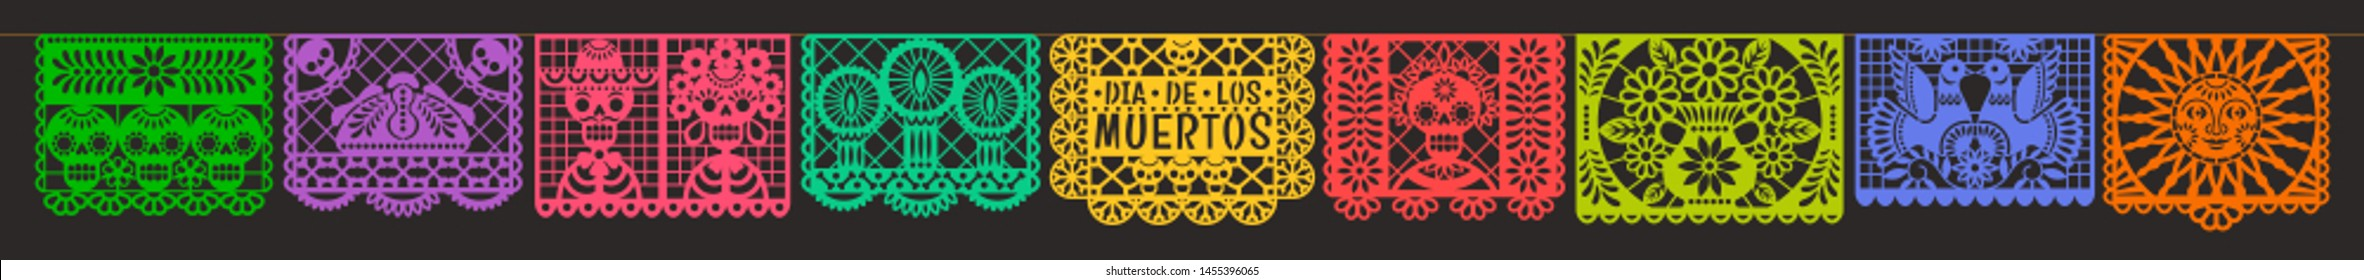 Day of the Dead. Dia de los muetros. Papel Picado. Vector horizontal banner with traditional Mexican paper cutting flags. Isolated on black background.